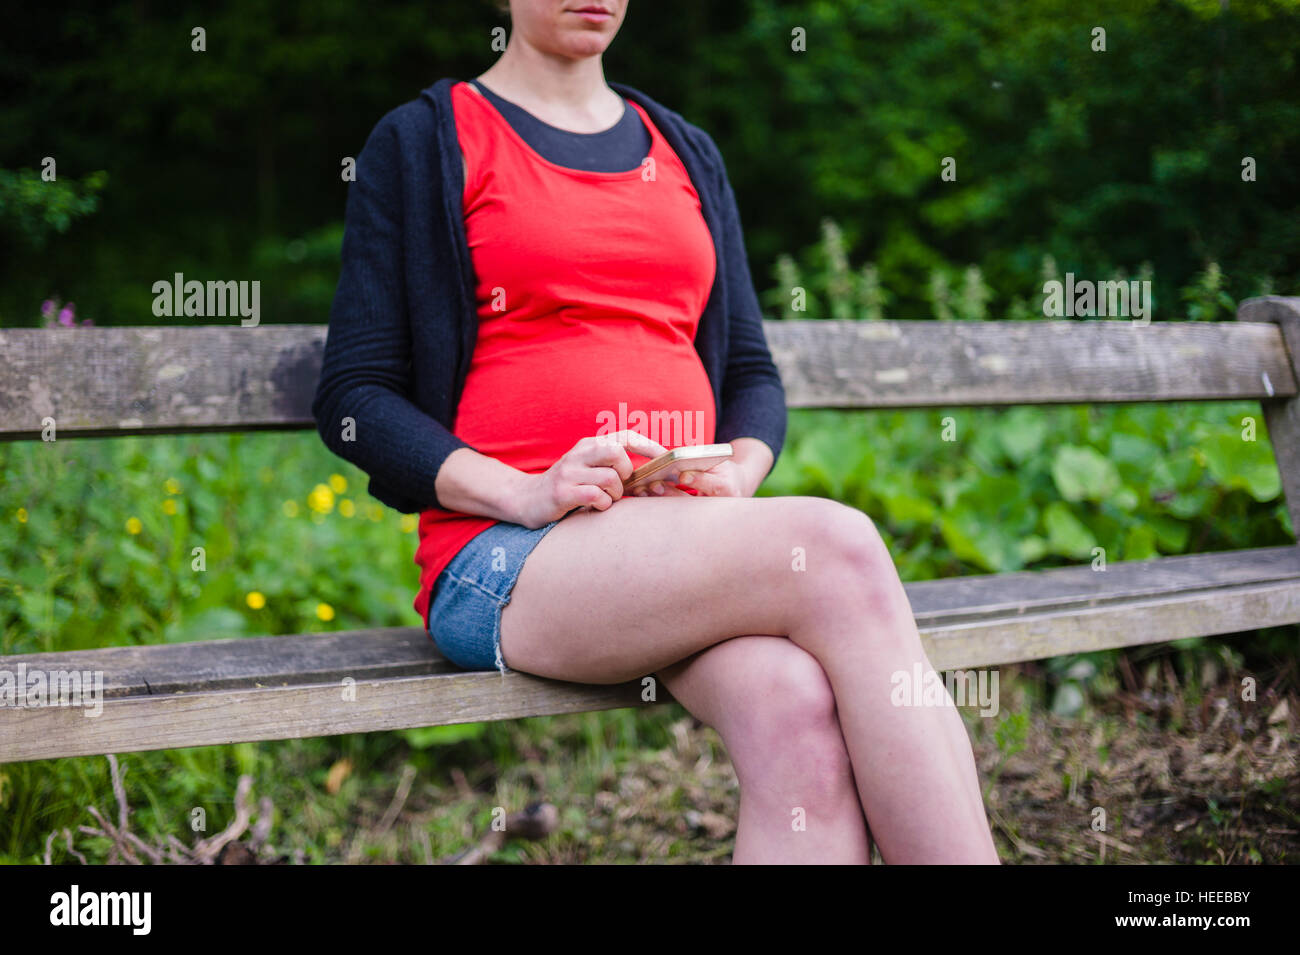 A young pregnant woman is sitting on a bench in the woods on a sunny day and is using her smart phone - Stock Image